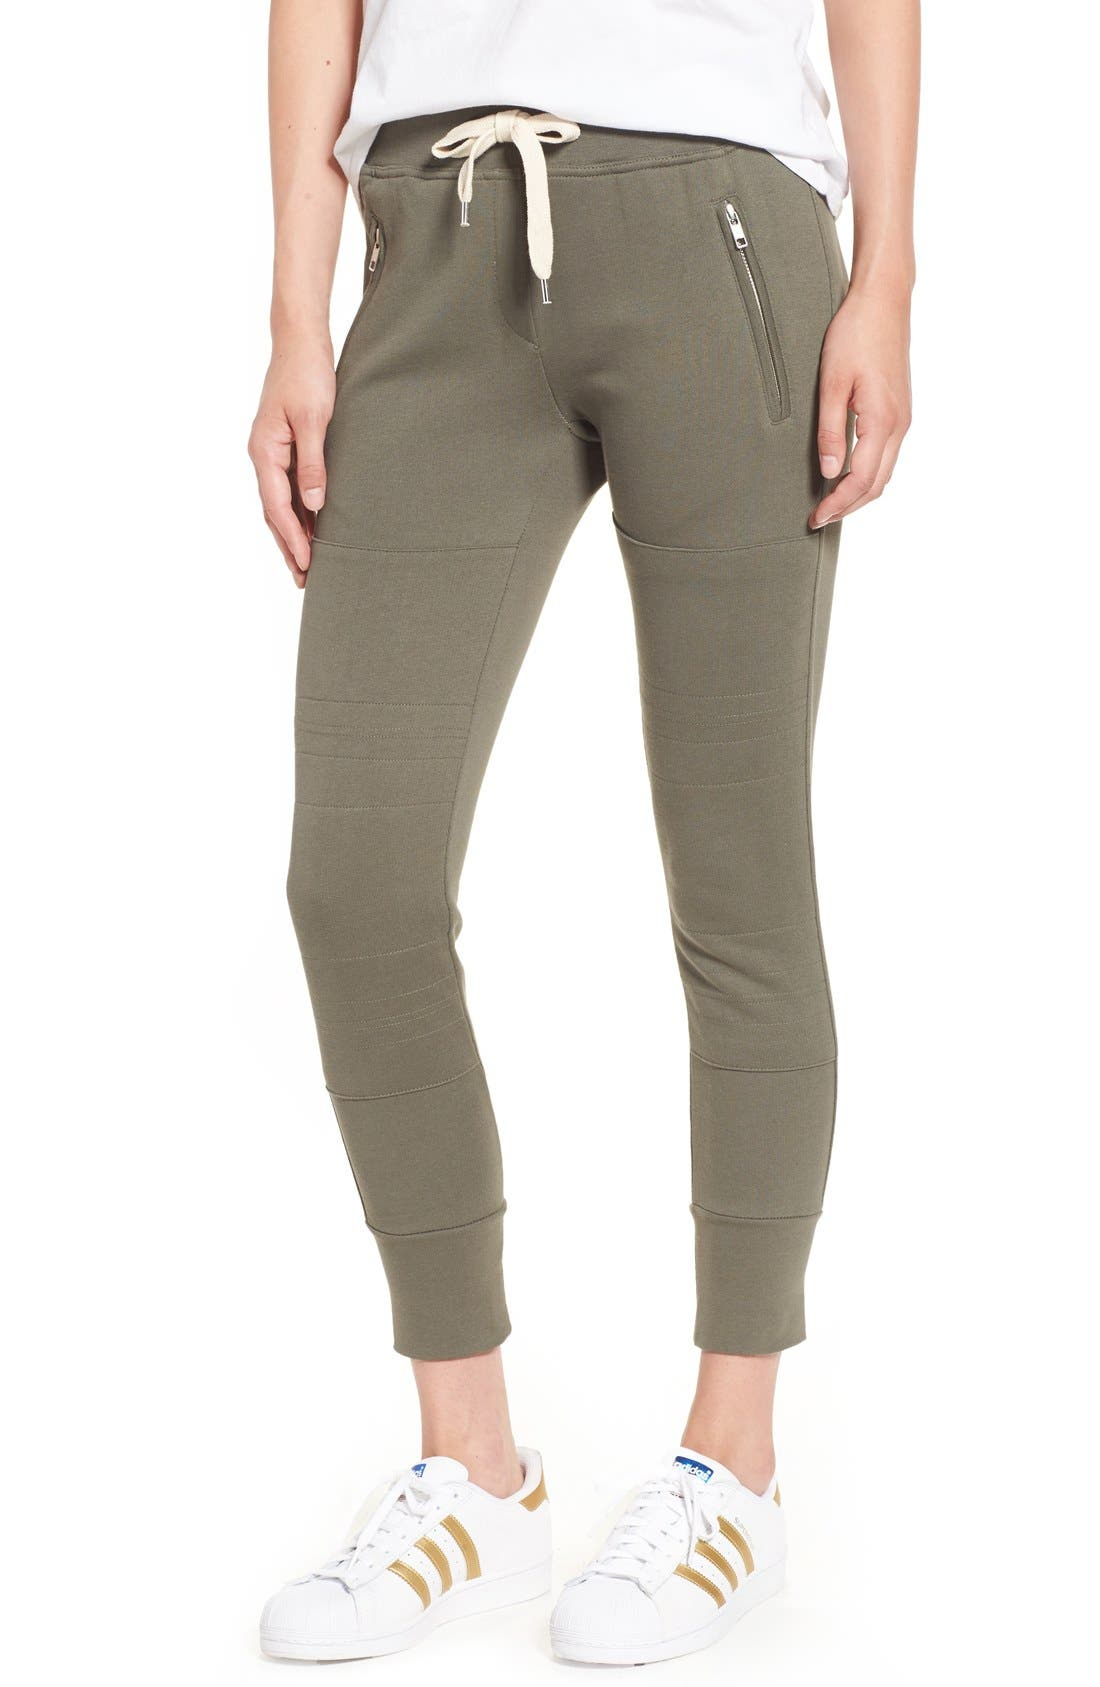 SINCERELY JULES Lux Skinny Cotton Jogger Pants